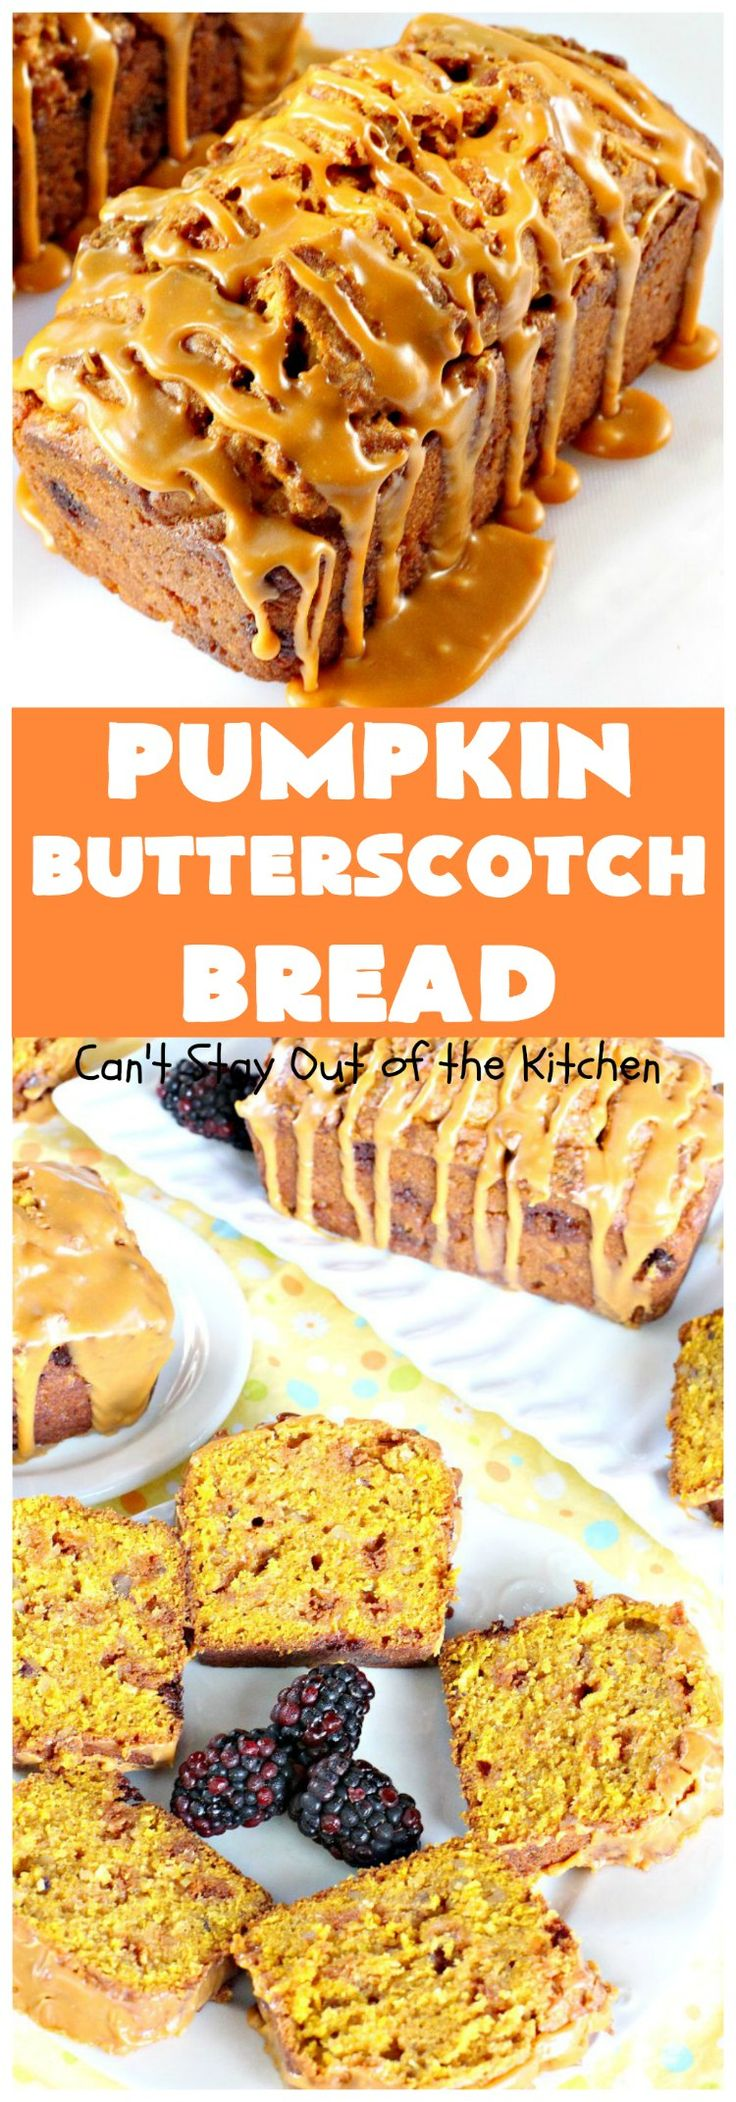 Pumpkin Butterscotch Bread